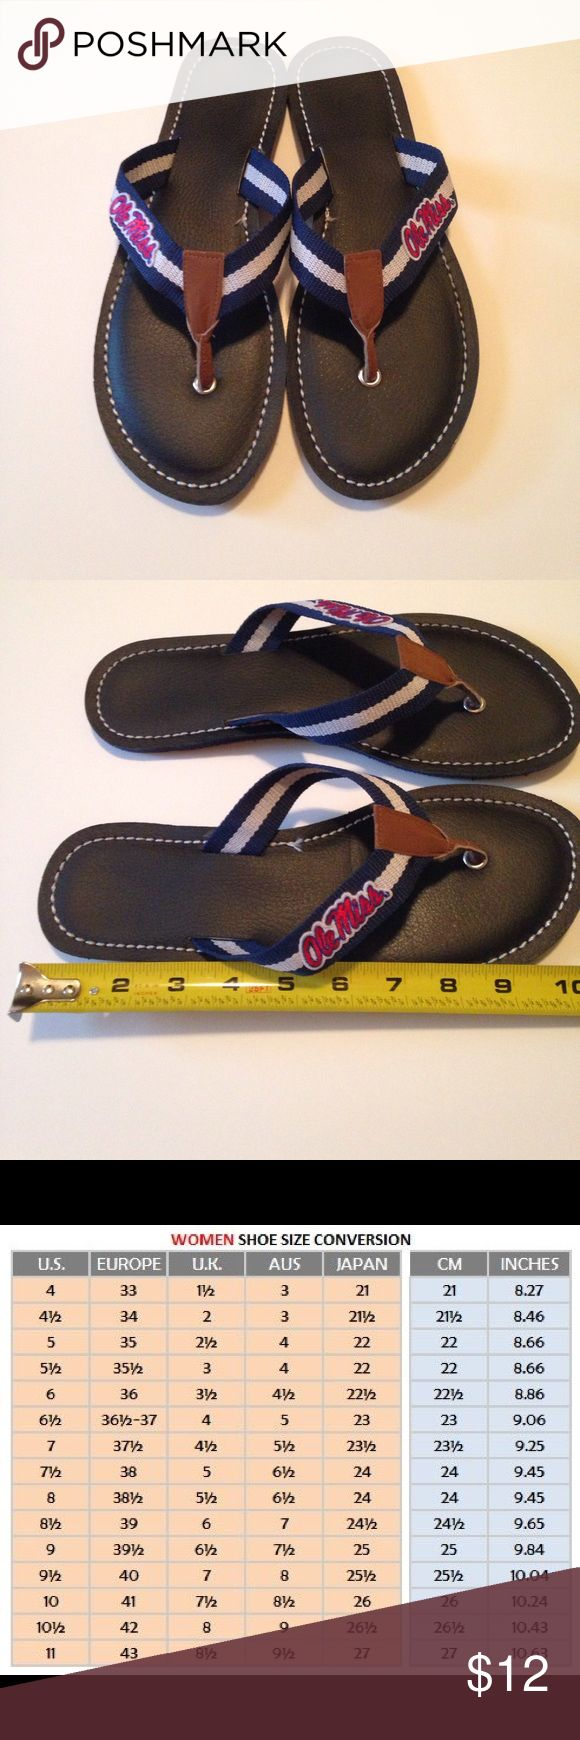 Women's Flip Flops Ole Miss Precious Flip Flops for the Ole Miss Fan...see size chart image...measuring size 10...GUC Shoes Sandals